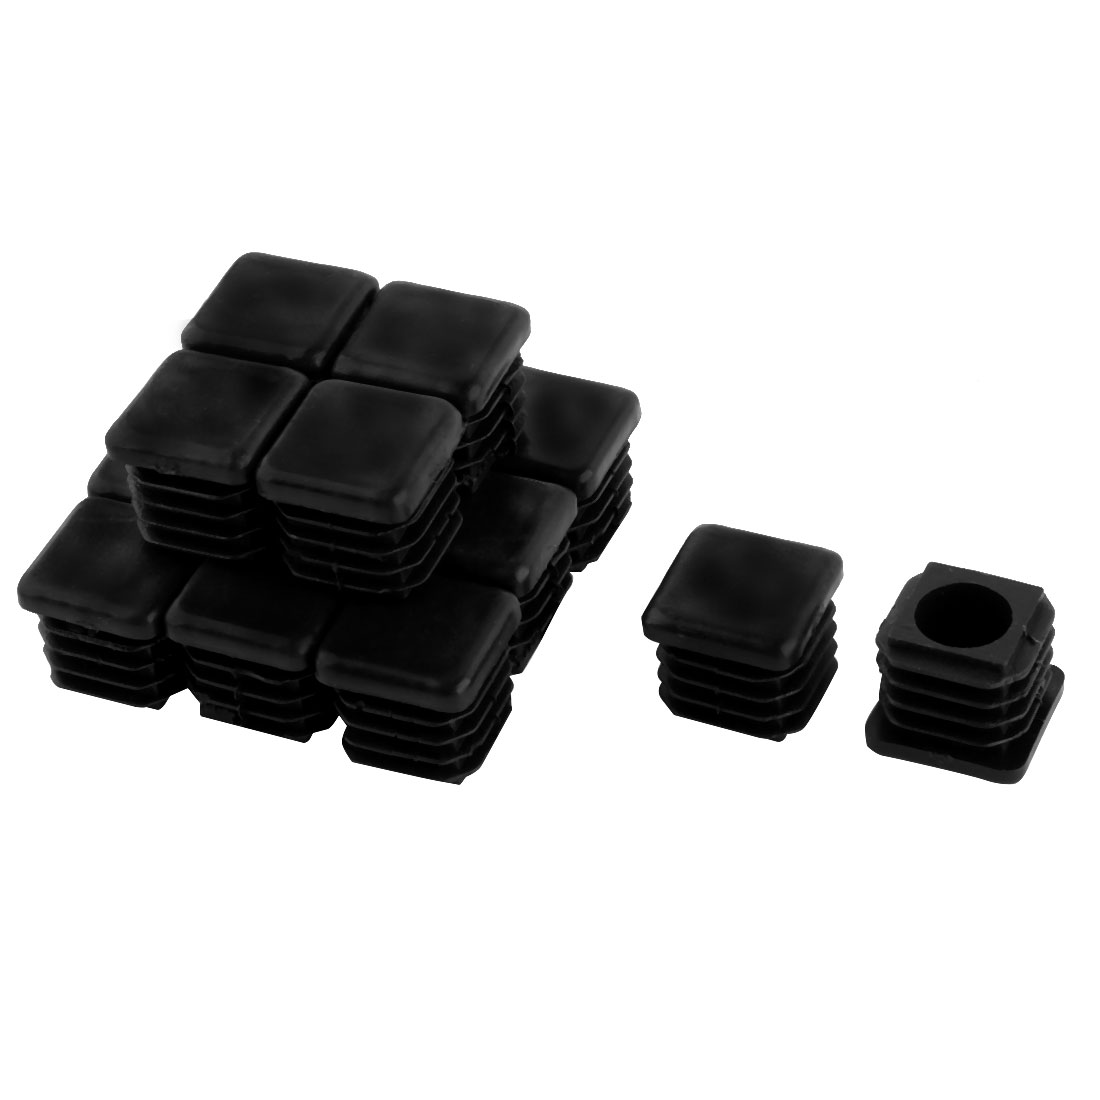 20mm x 20mm Plastic Square Tube Inserts End Blanking Caps Black 15 Pcs